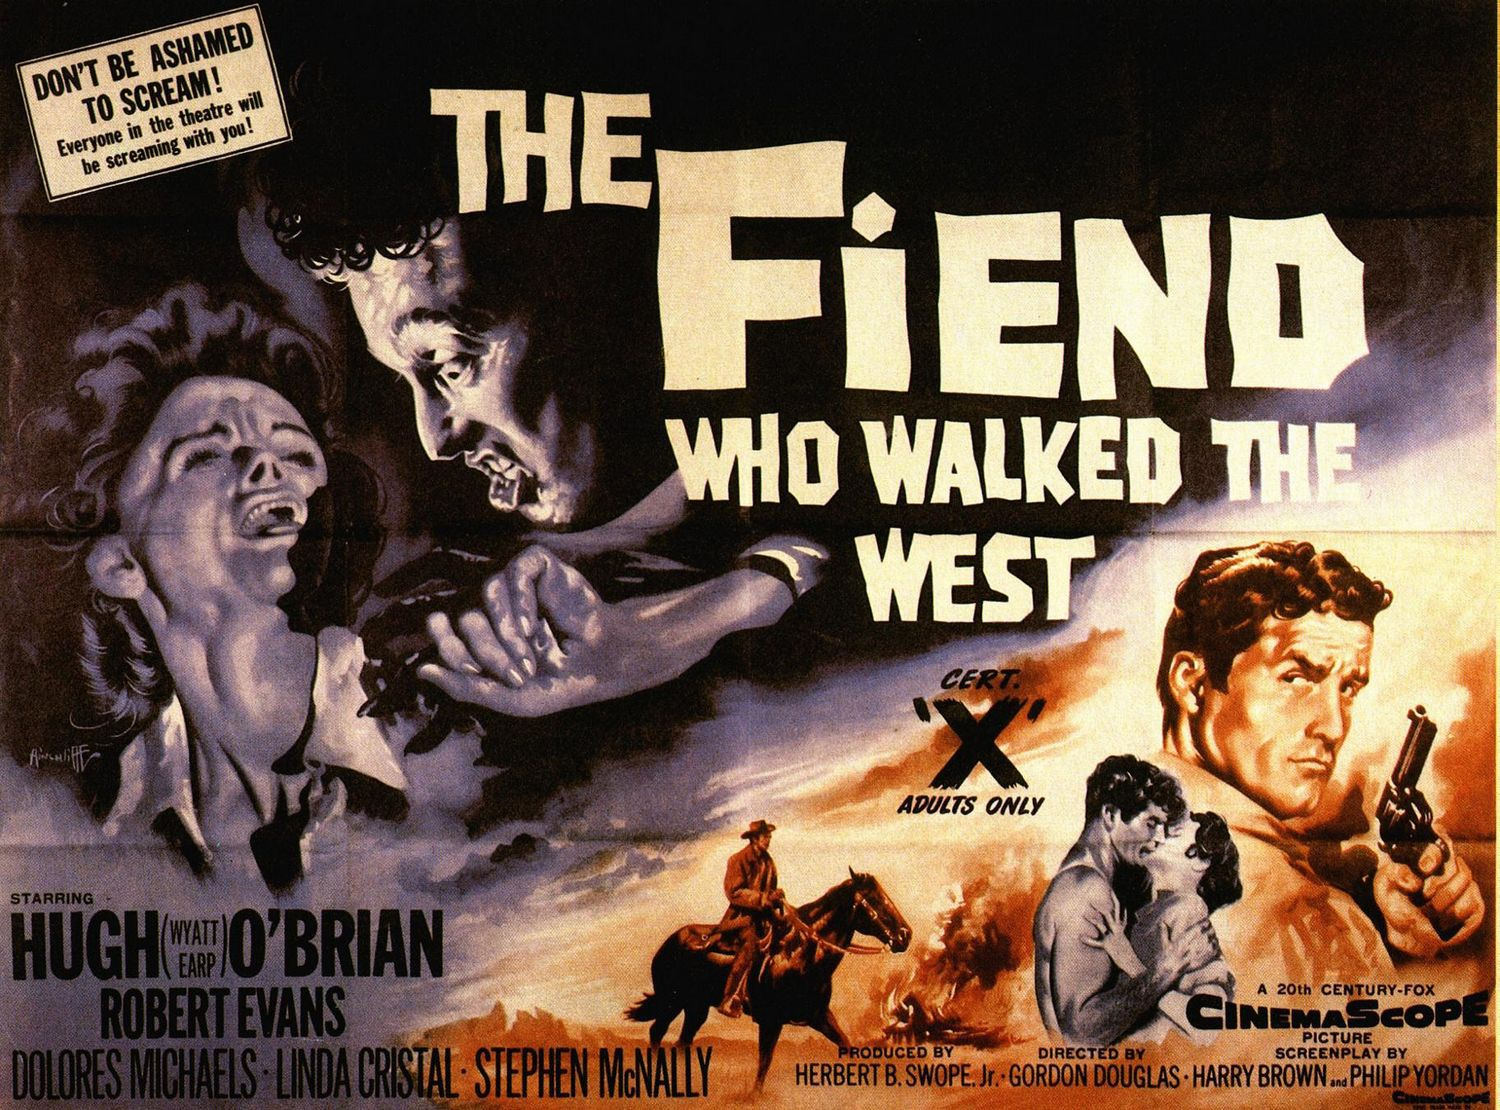 Fiend who Walked the West - don't be ashamed to scream, everyone in the theatre will be screaming with you! - Hugh Wyatt Earp O'Brien - Robert Evans - Dolores Michaels - Linda Cristal - Stephen McNally